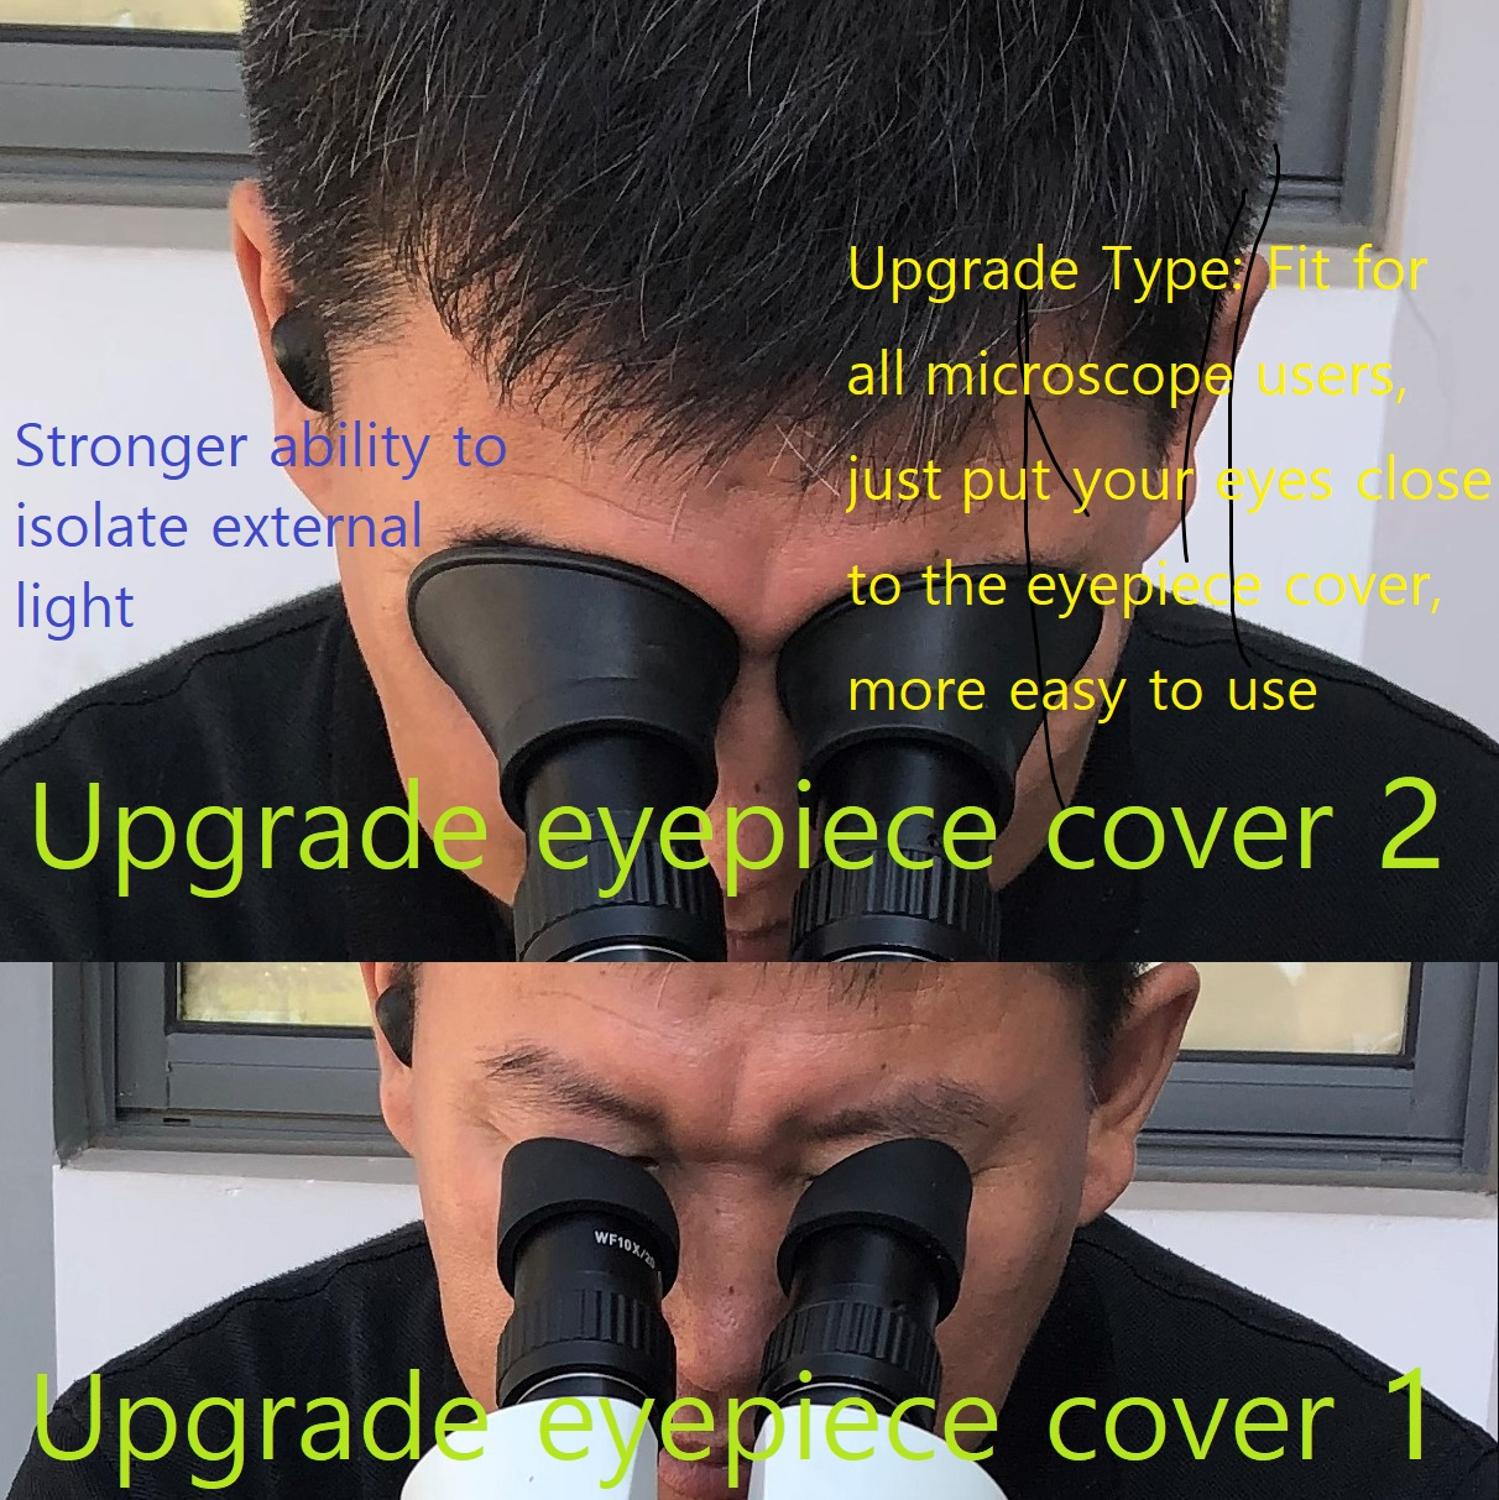 Lucky Zoom 2 Pcs/Set Upgrade Microscope Rubber Eyepiece Cover Guards For Stereo Microscope Monocular  Large Eyepiece Guards